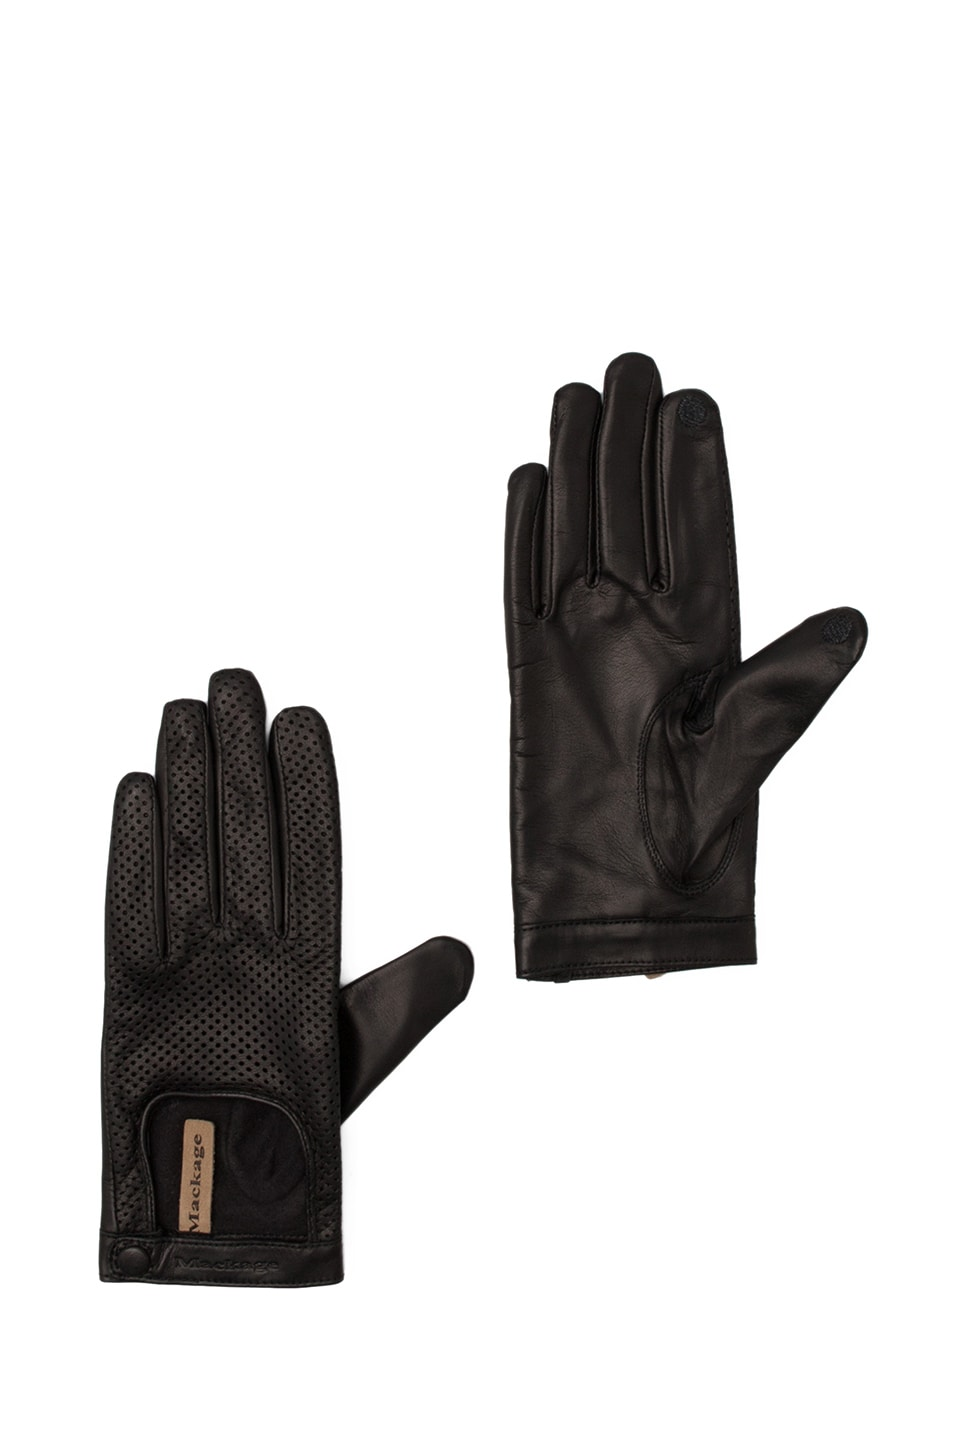 Mackage Edwina Ladies Leather Gloves in Black